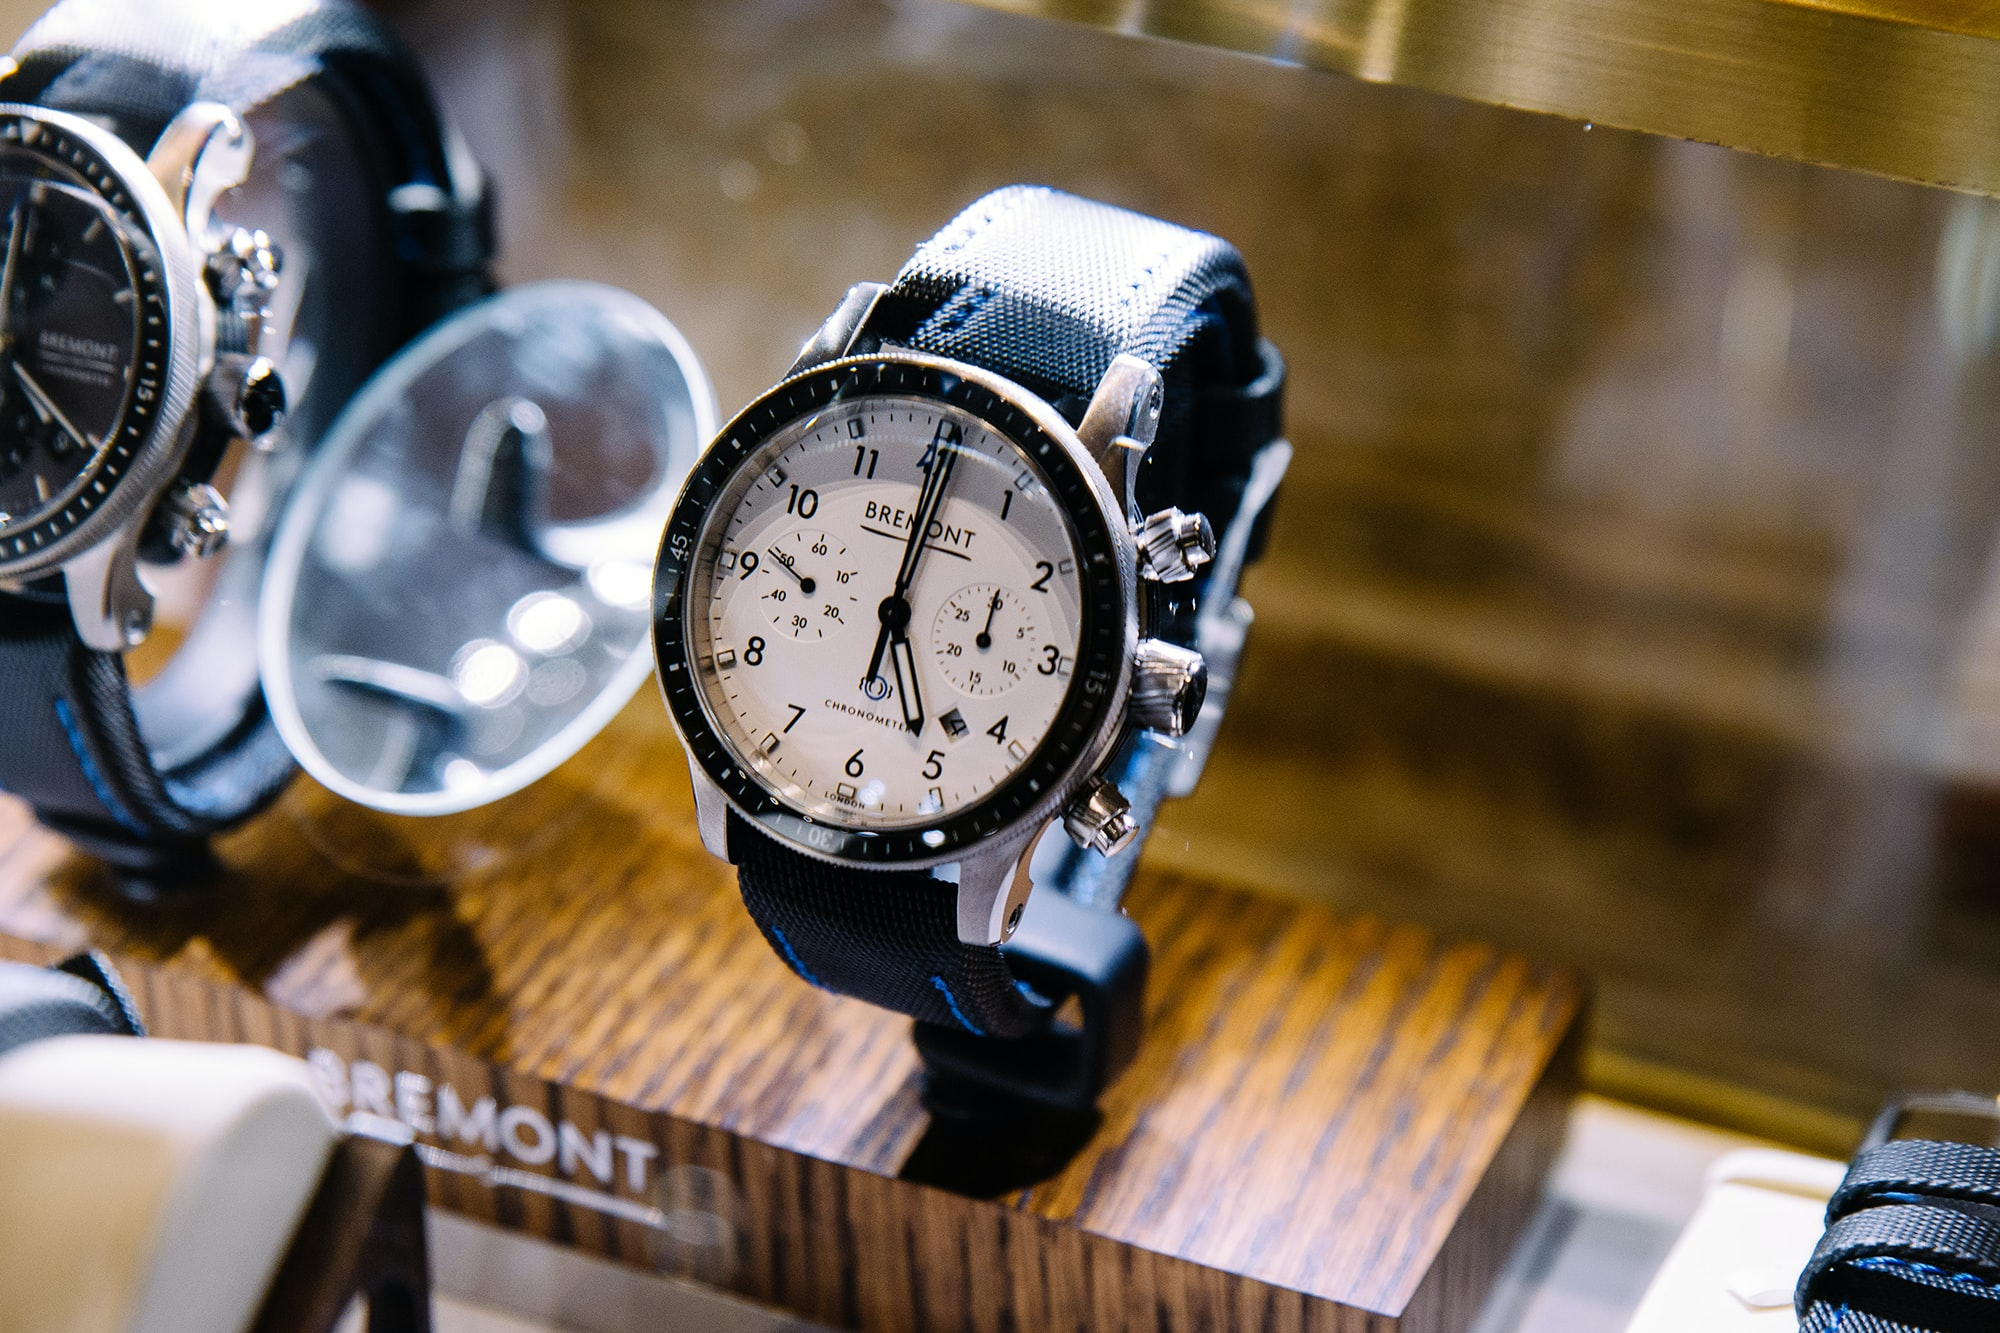 Photo Report: HODINKEE Celebrates London Jewelers' New Store In New York City's Oculus Photo Report: HODINKEE Celebrates London Jewelers' New Store In New York City's Oculus 20161109 LondonJewelersxHodinkee 130